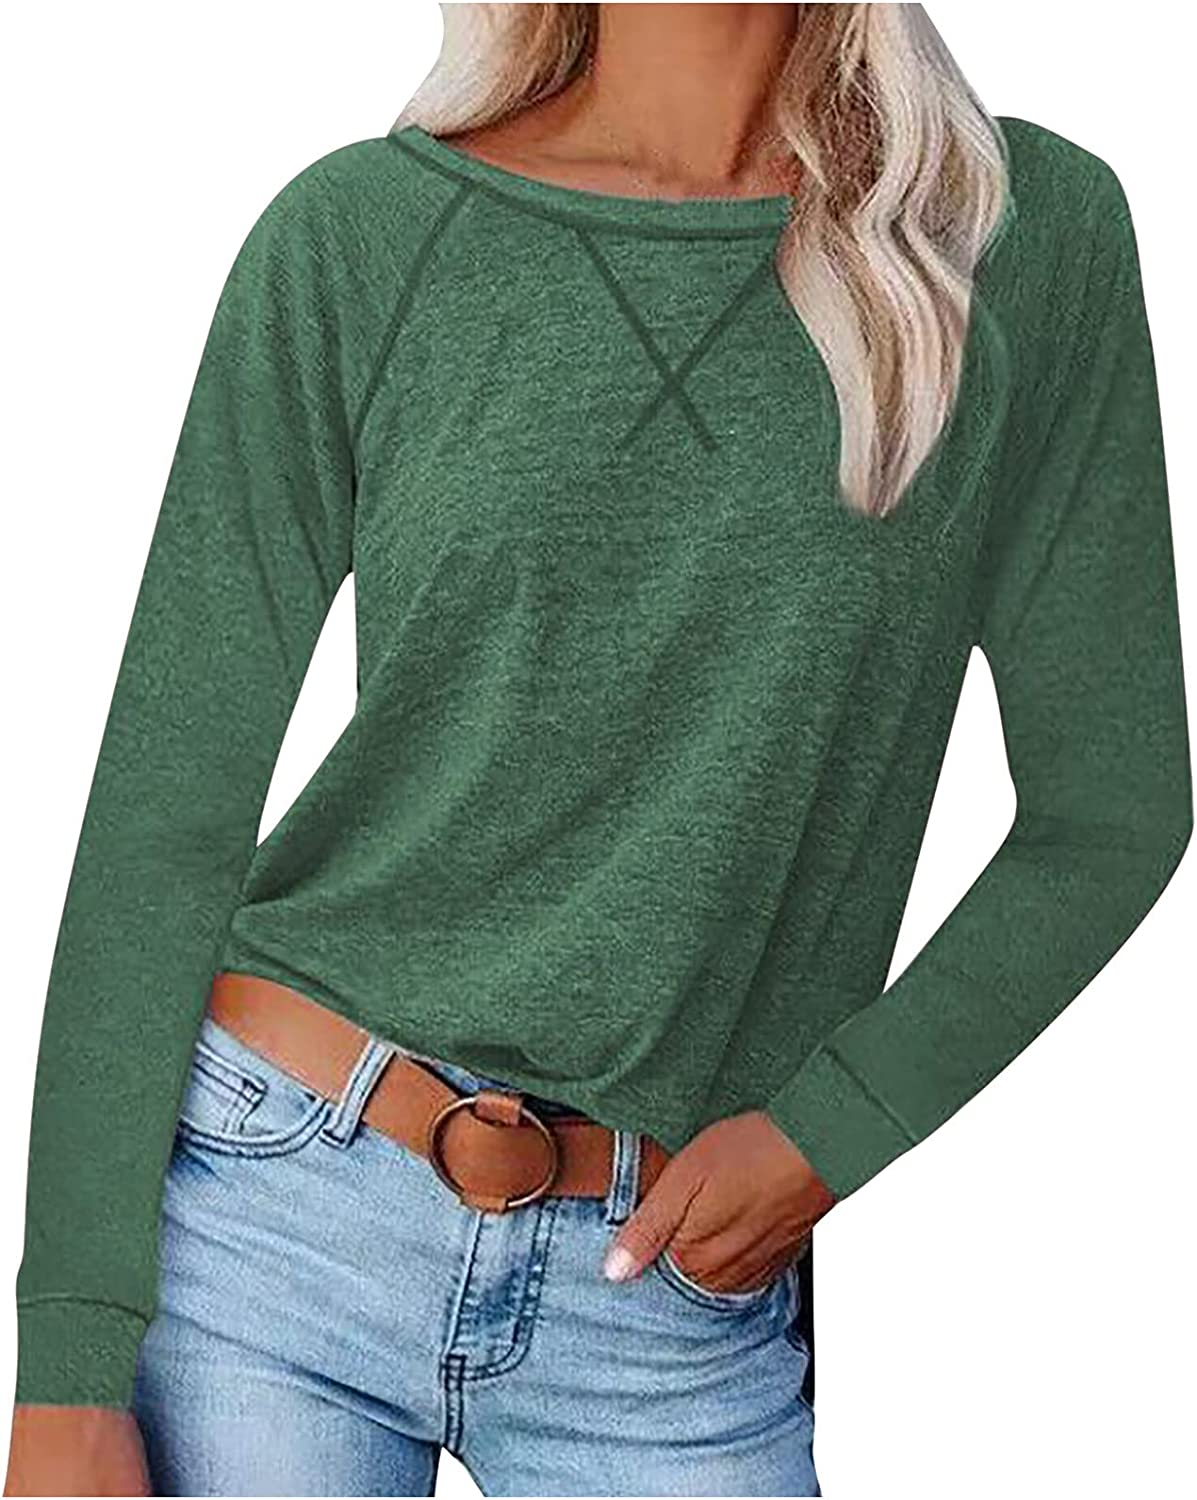 Women's Plain Long Sleeve Pullovers Tops, Womans Patchwork Tees Shirts and Blouses, Ladies Crew Neck Loose Fit Tshirts